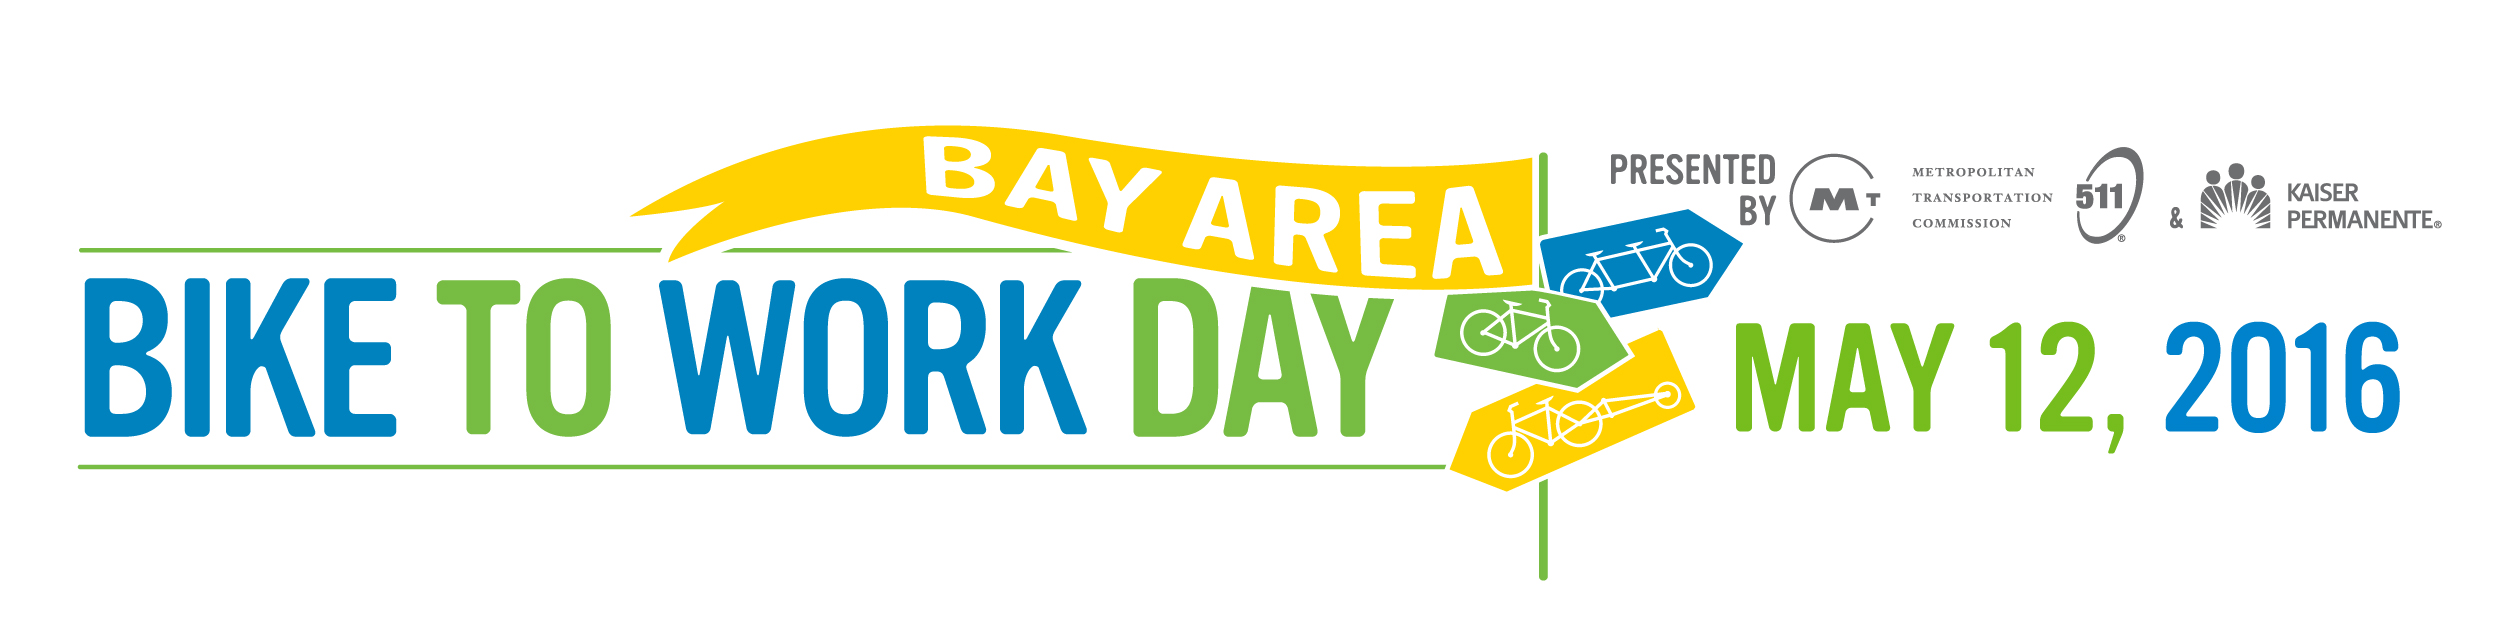 Bike to Work Day 2016 logo